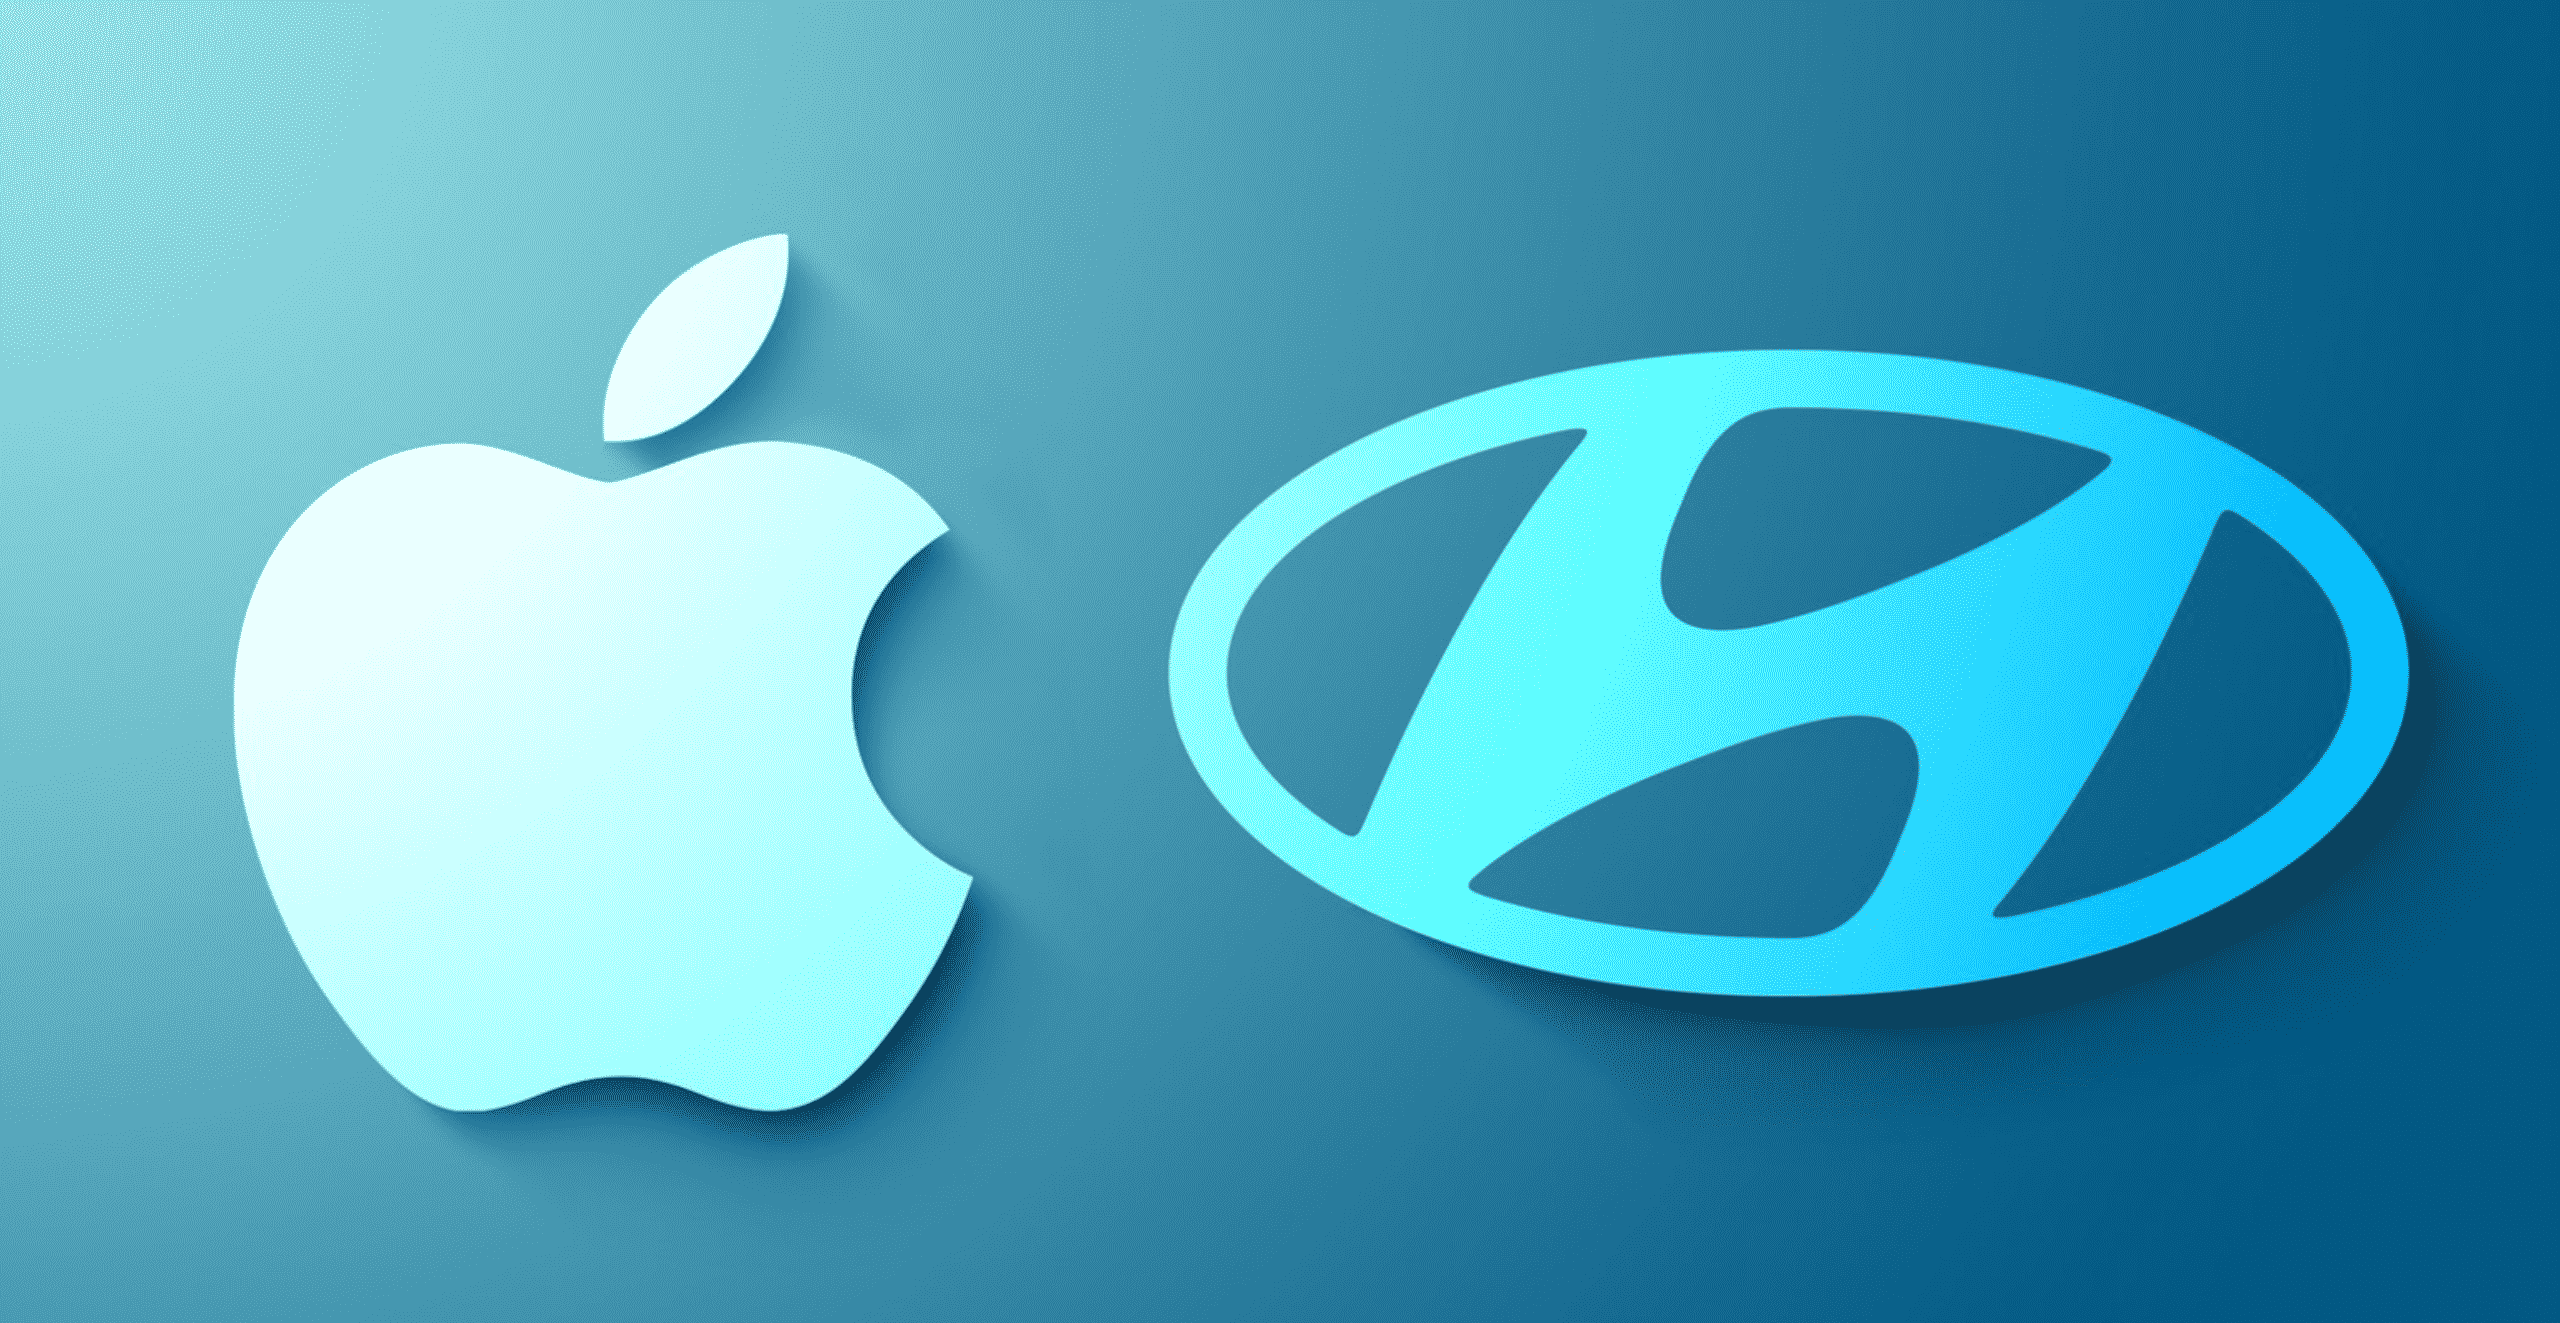 Apple and Hyundai